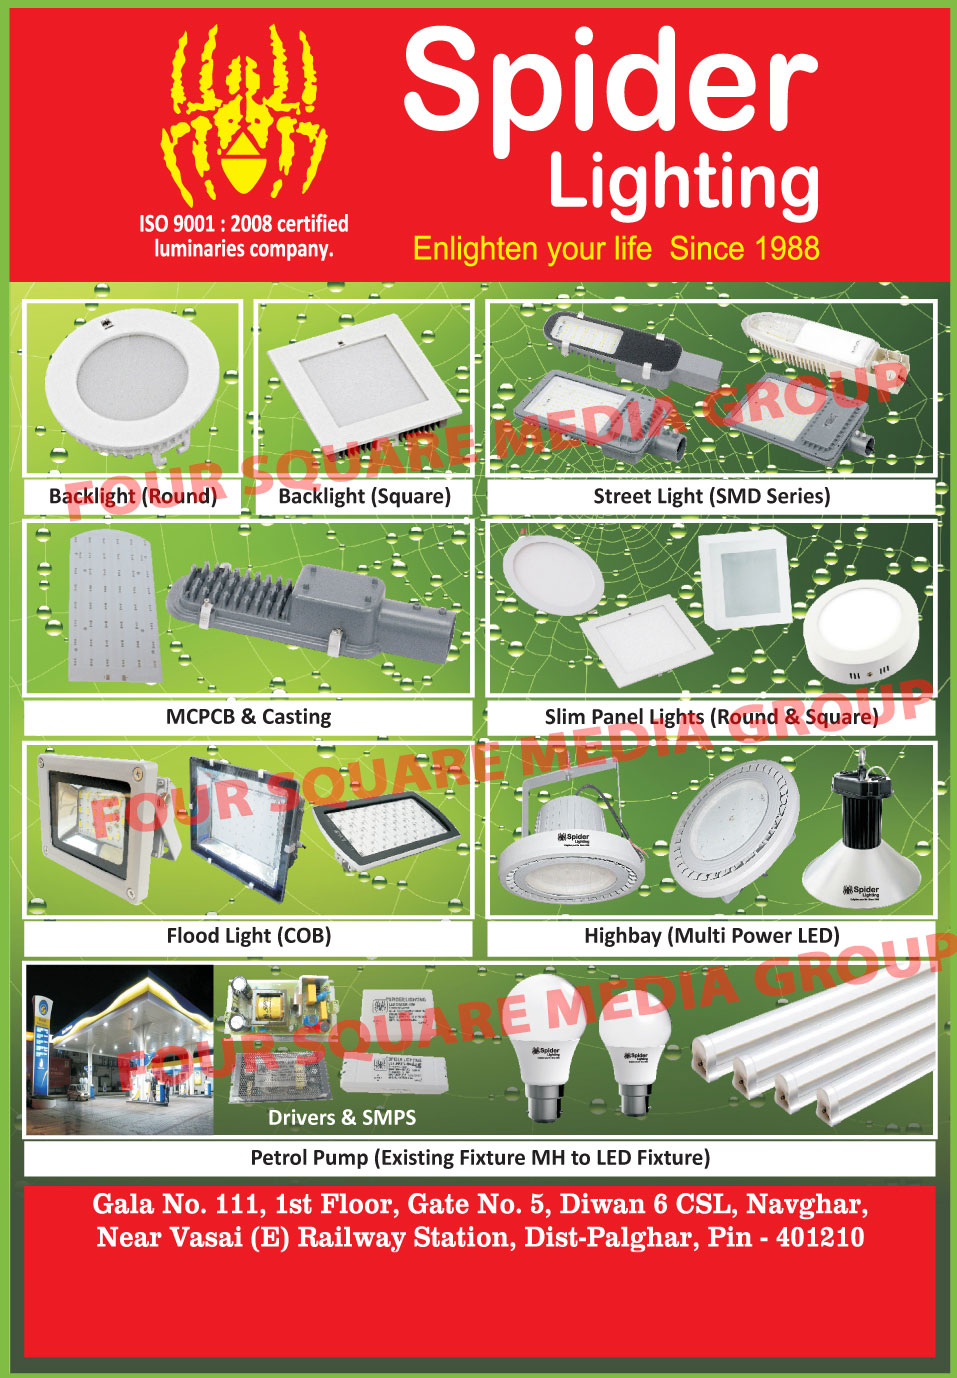 MCPCB, Aluminium Die Castings, Street Lights, Led lights, Led Bulbs, Led Tube Lights, Led Street Lights, Bay Lights, Flood Lights, Led Drivers, Panel Lights, Down Lights,Die Casting Street Lights, Bay Lights, Bulb, Tube Lights, Flood Lights, Drivers, Round Led Backlights, Round Led Back Lights, Square Led Backlights, Square Led Back Lights, Led Round Backlights, Led Round Back Lights, Led Square Backlights, Led Square Back Lights, SMD Street Lights, Round Slim Panel Lights, Square Slim Panel Lights, COB Flood Lights, Led High Bay Lights, SMPS, Petrol Pump Fixtures